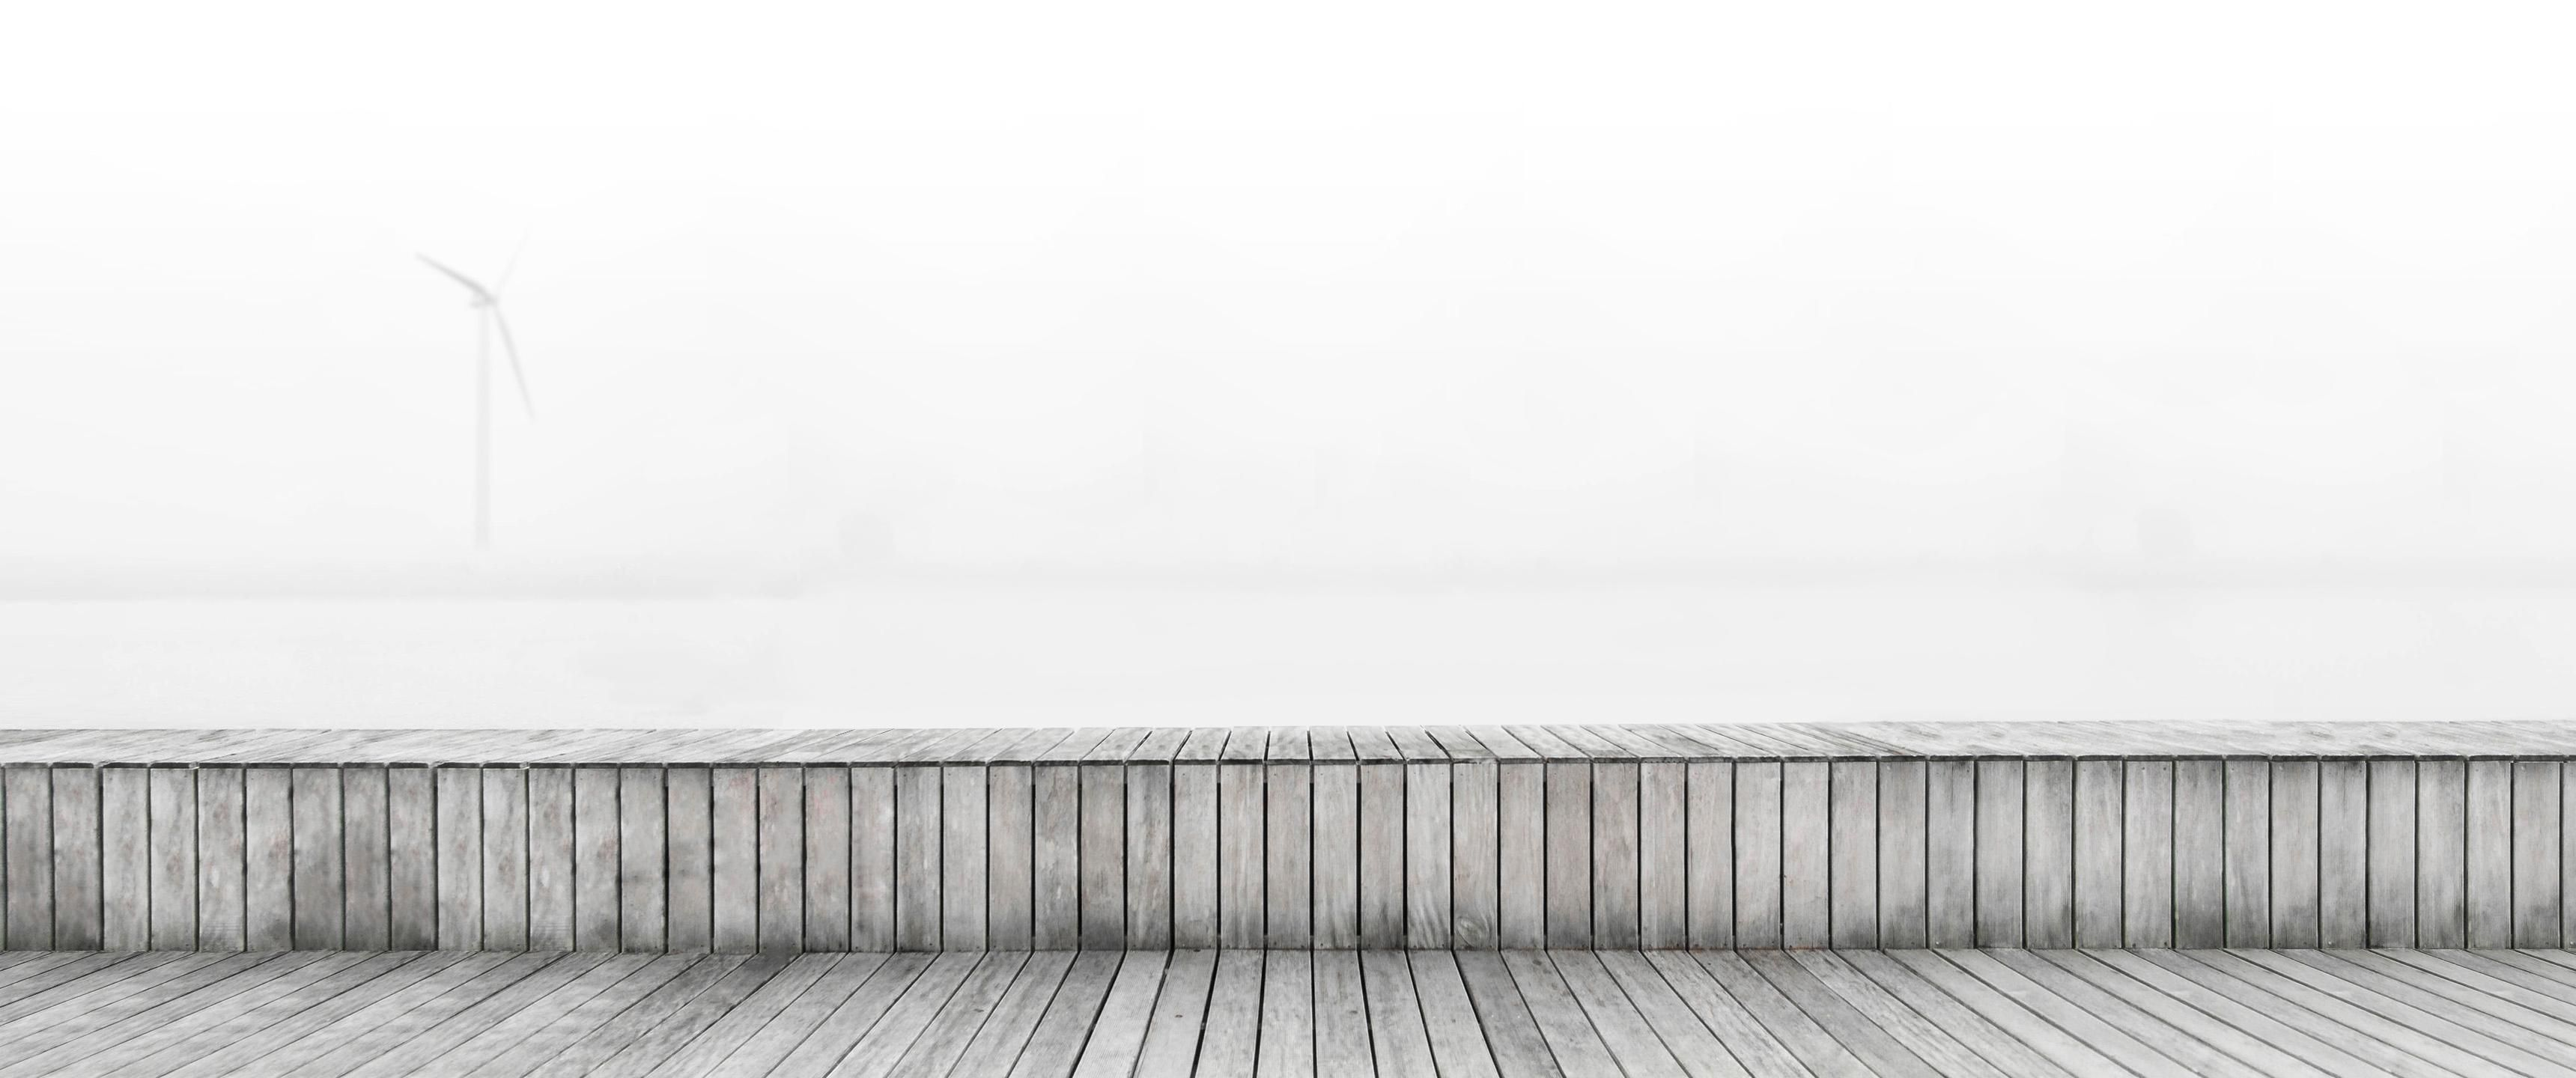 [3440x1440 Ultrawide] Minimalism Morning Mist.